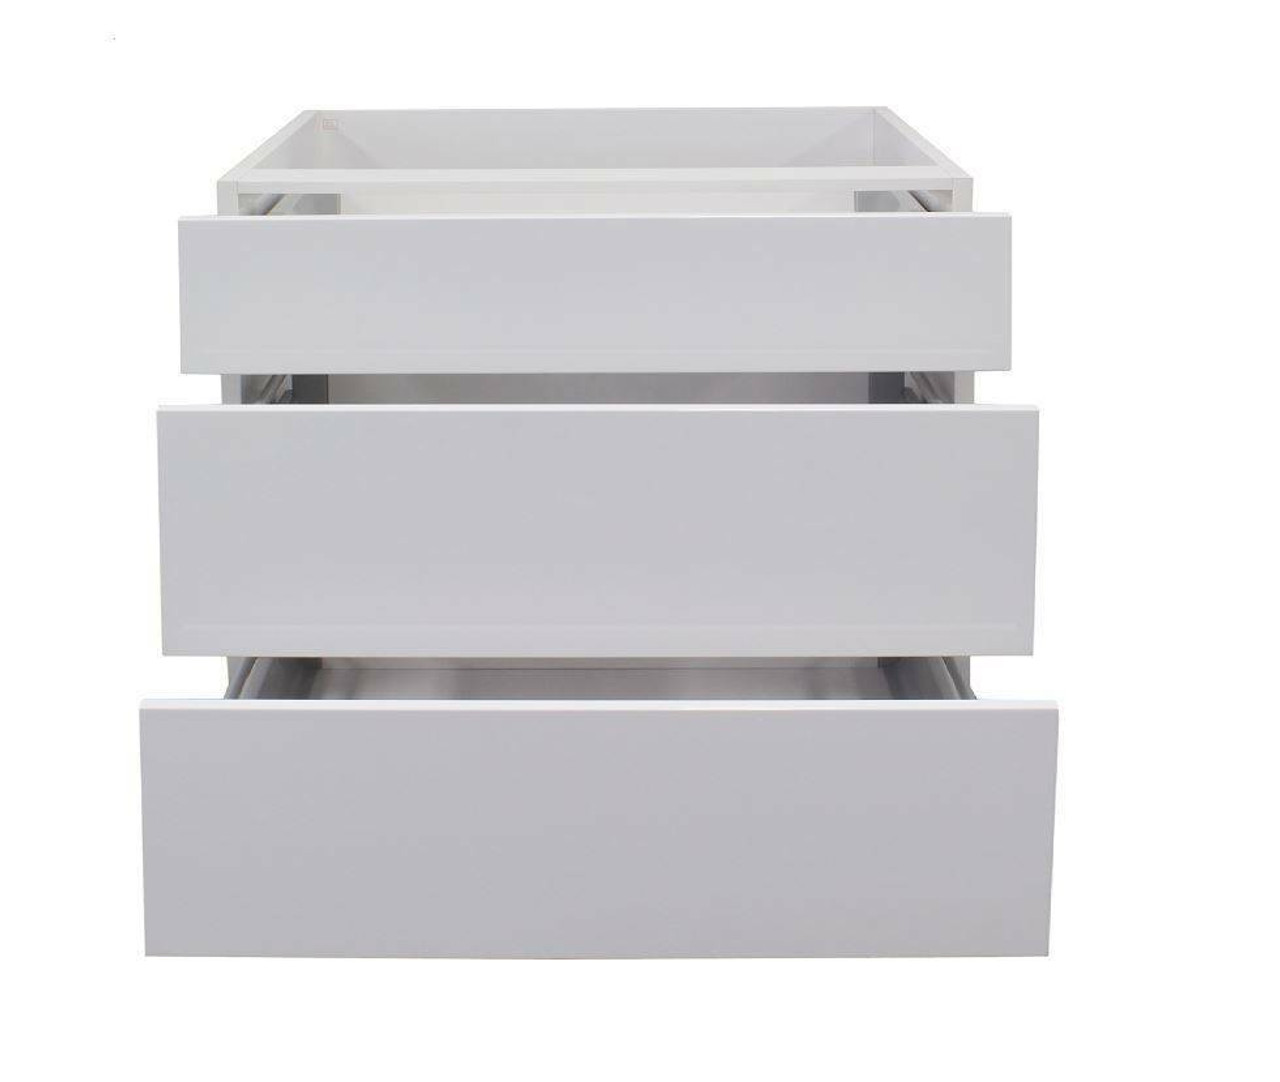 Base Cabinet 3 Drawer 800mm The Sink Warehouse Shop Now